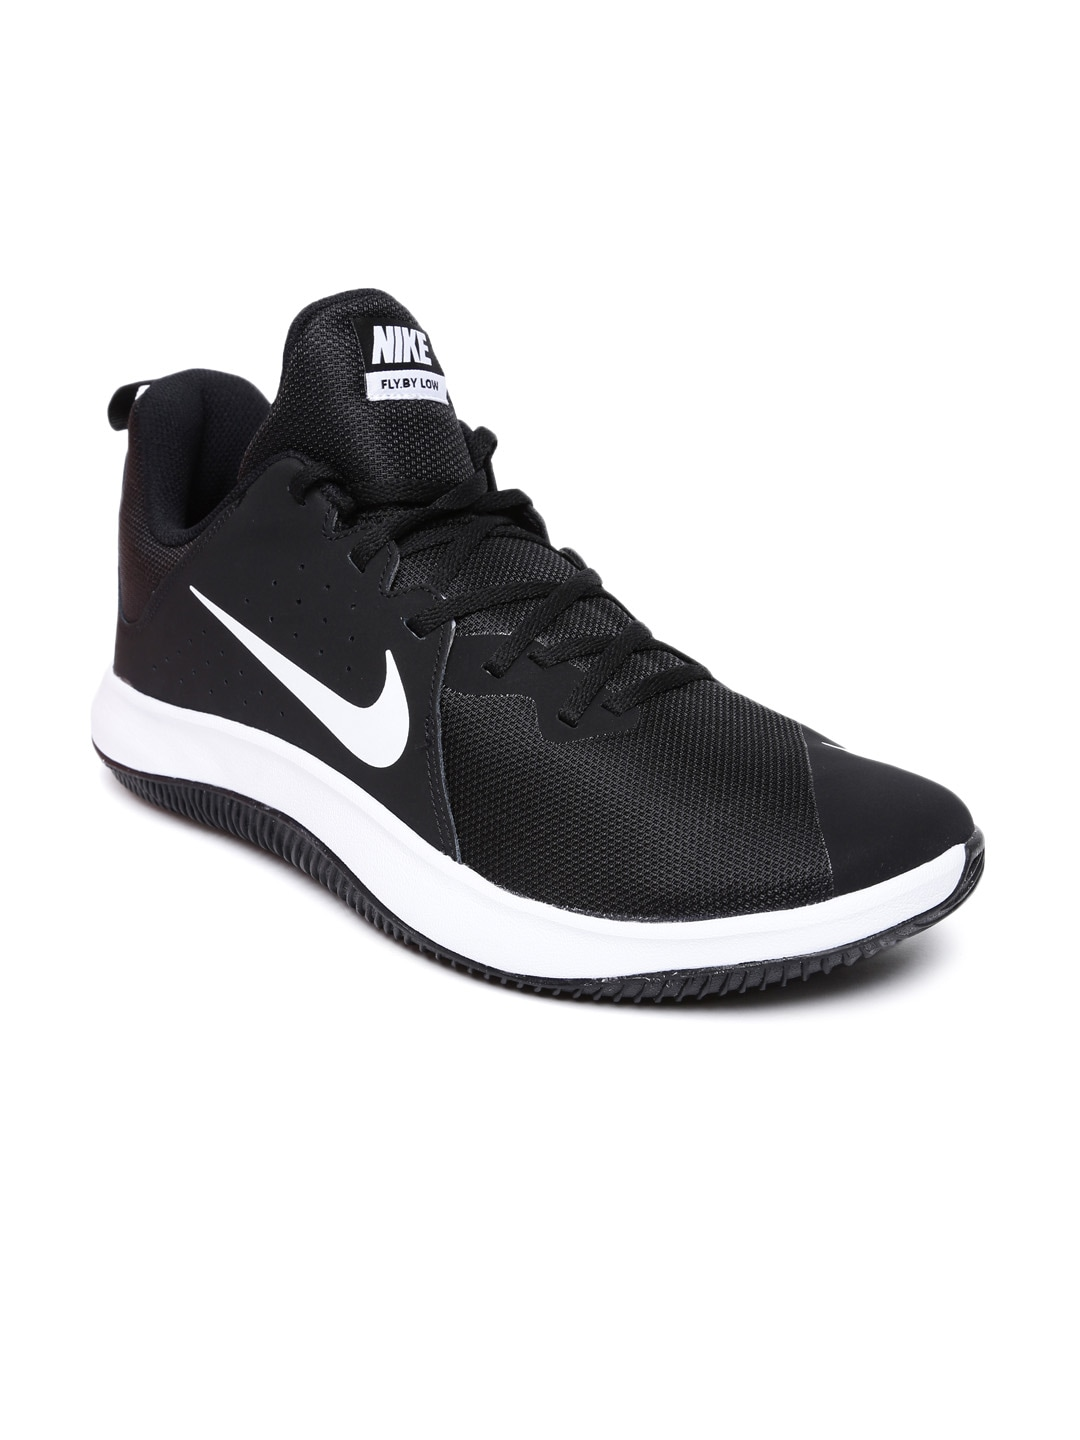 2a2730ec425f Nike Shoes - Buy Nike Shoes for Men